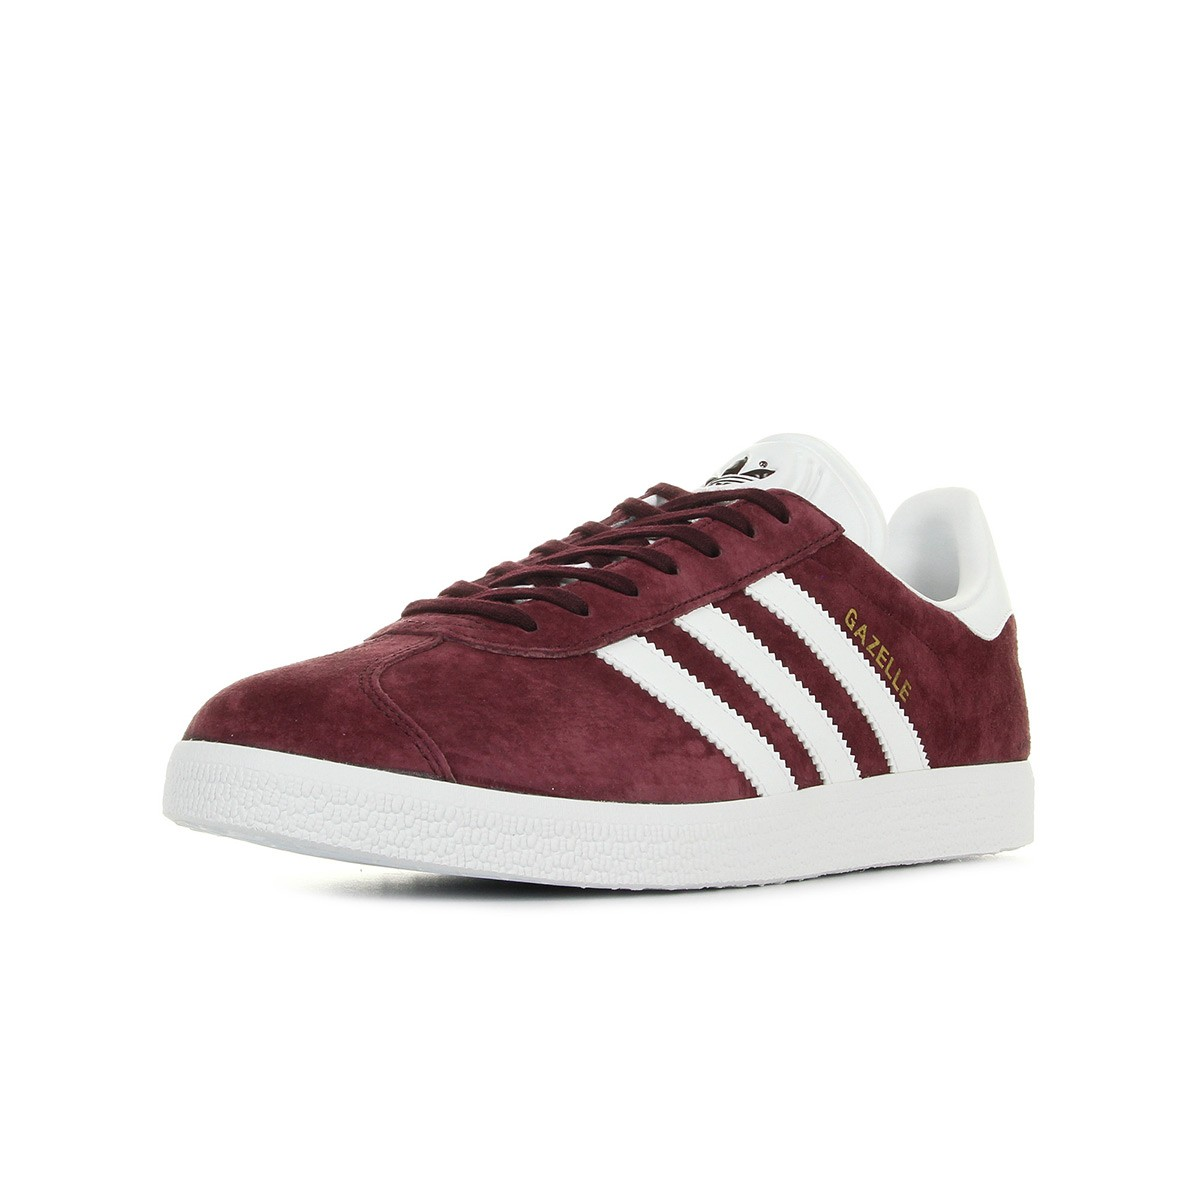 adidas gazelle bordeaux 38